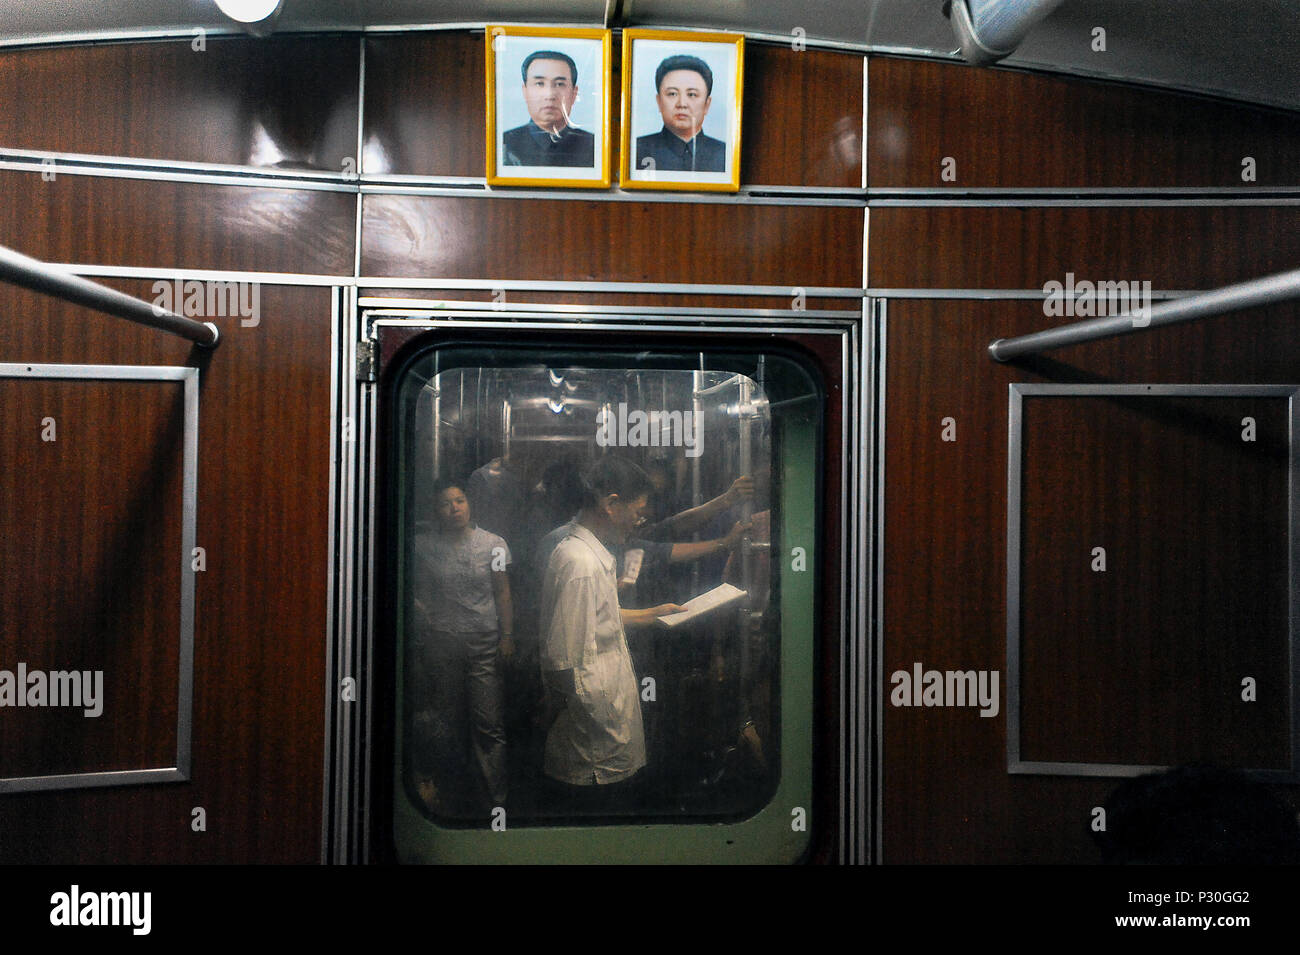 Pyongyang, North Korea, pictures of Kim Il-Sung and Kim Jong-Il in the subways - Stock Image